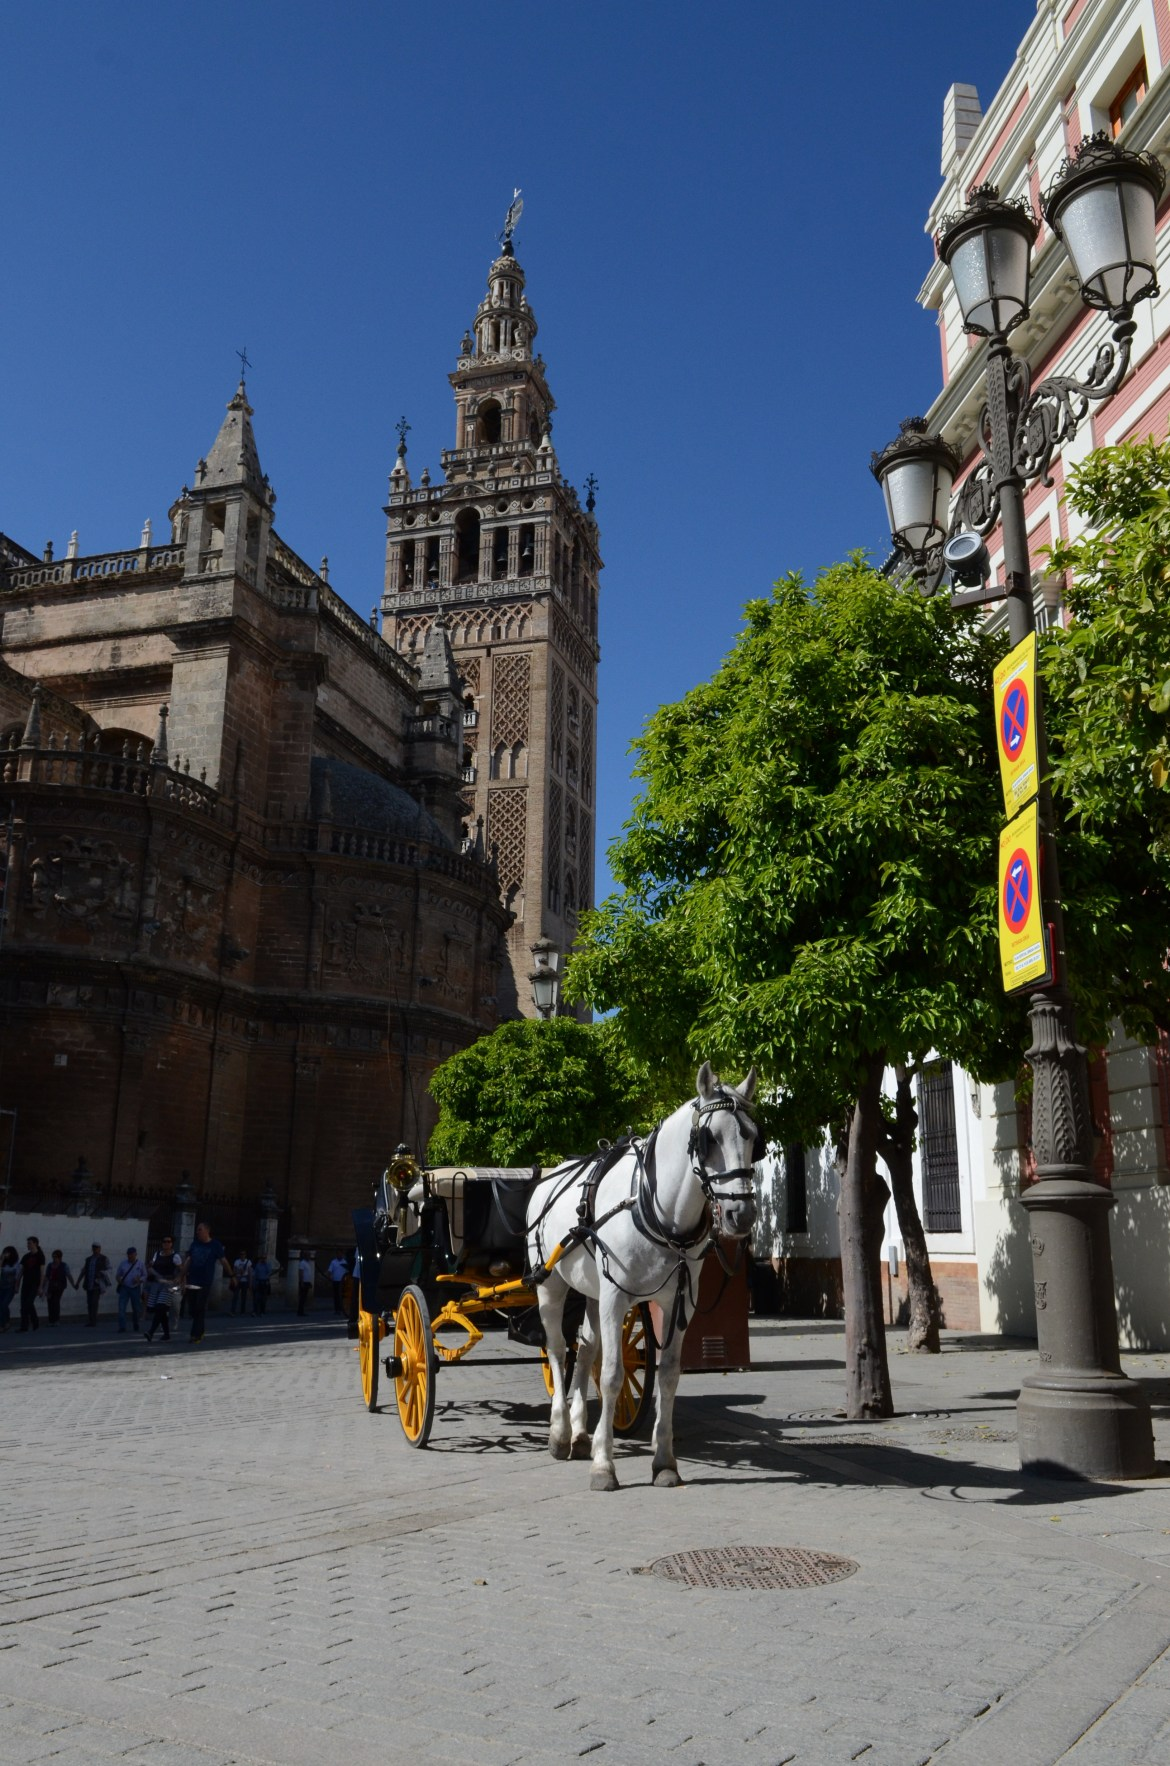 One Week in Andalusia: Seville, Malaga, & Granada